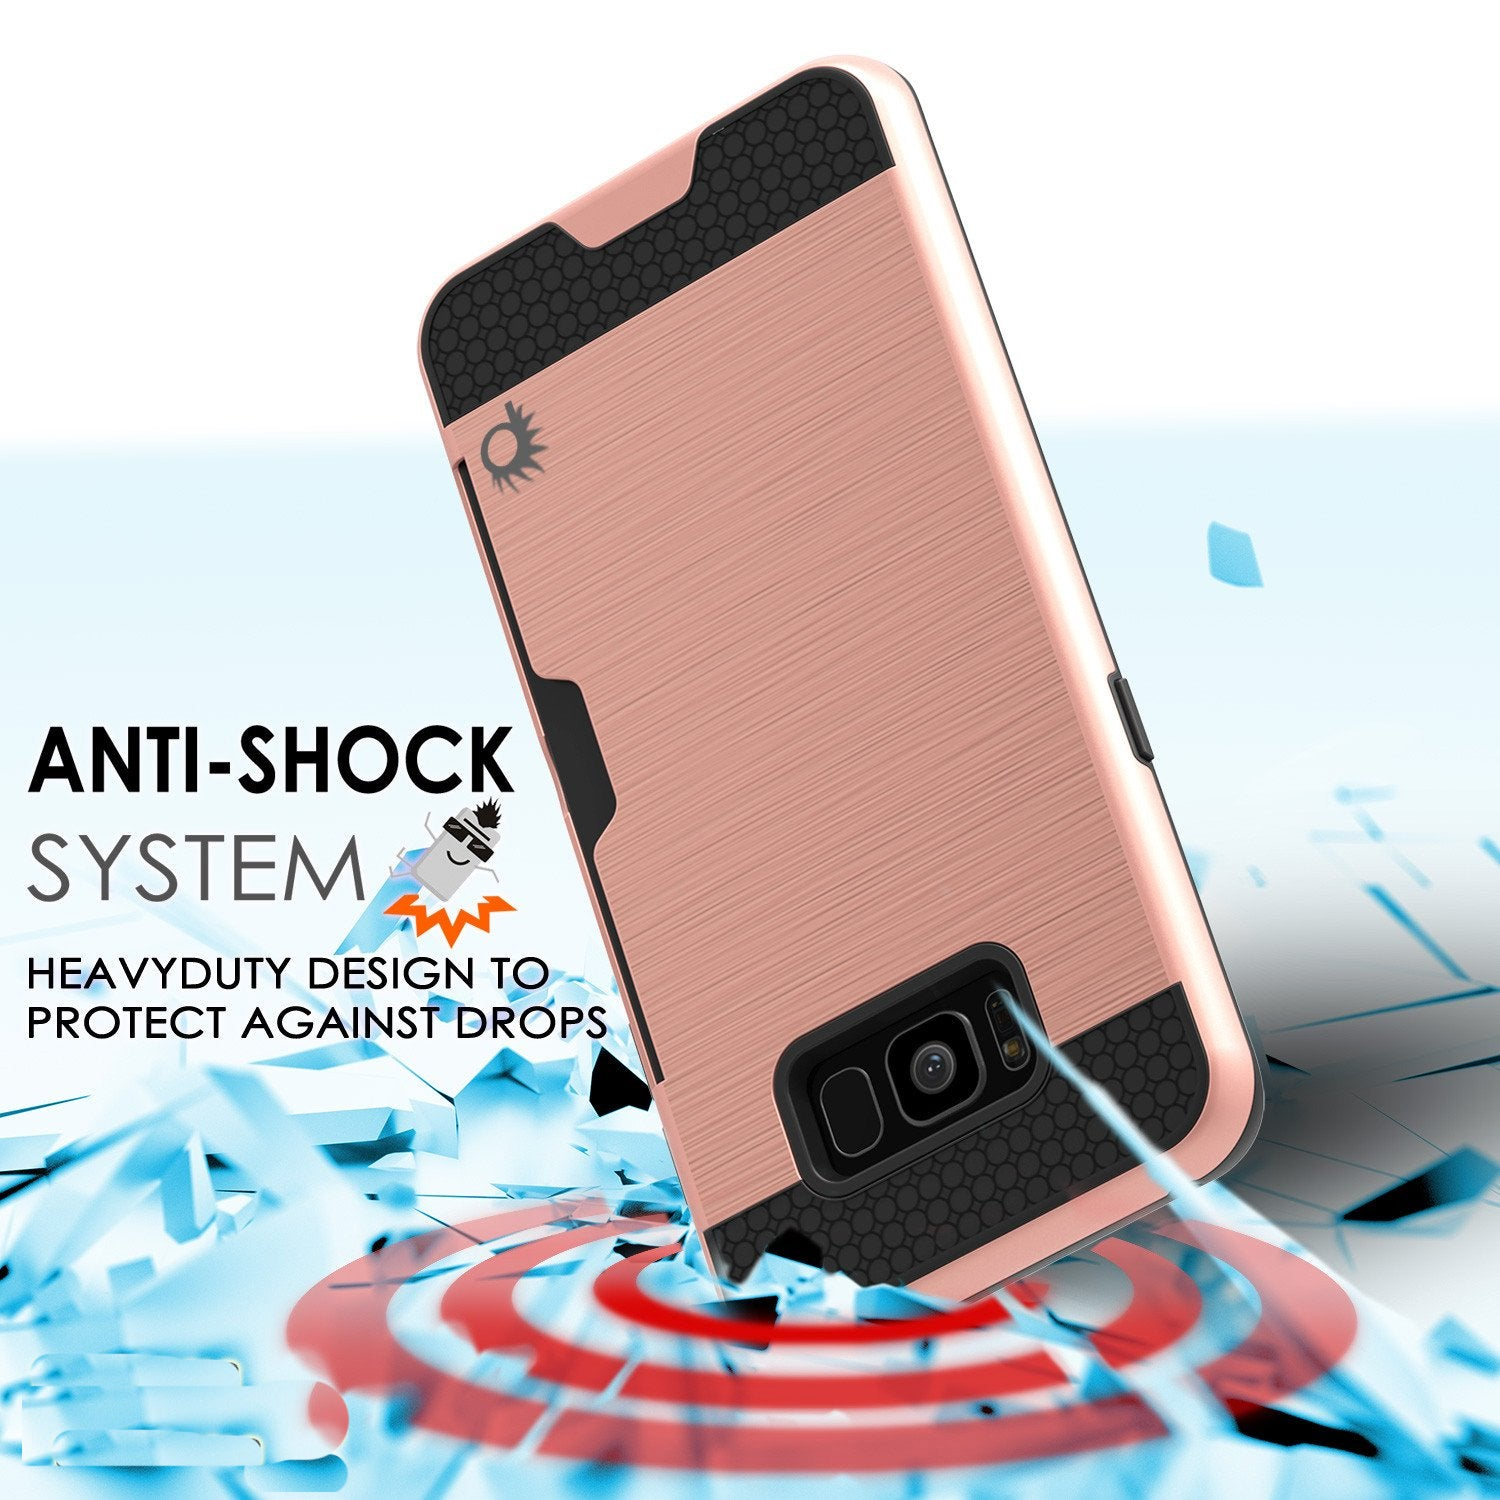 Galaxy S8 Plus case SLOT Series Dual-Layer Armor Cover, Rose Gold